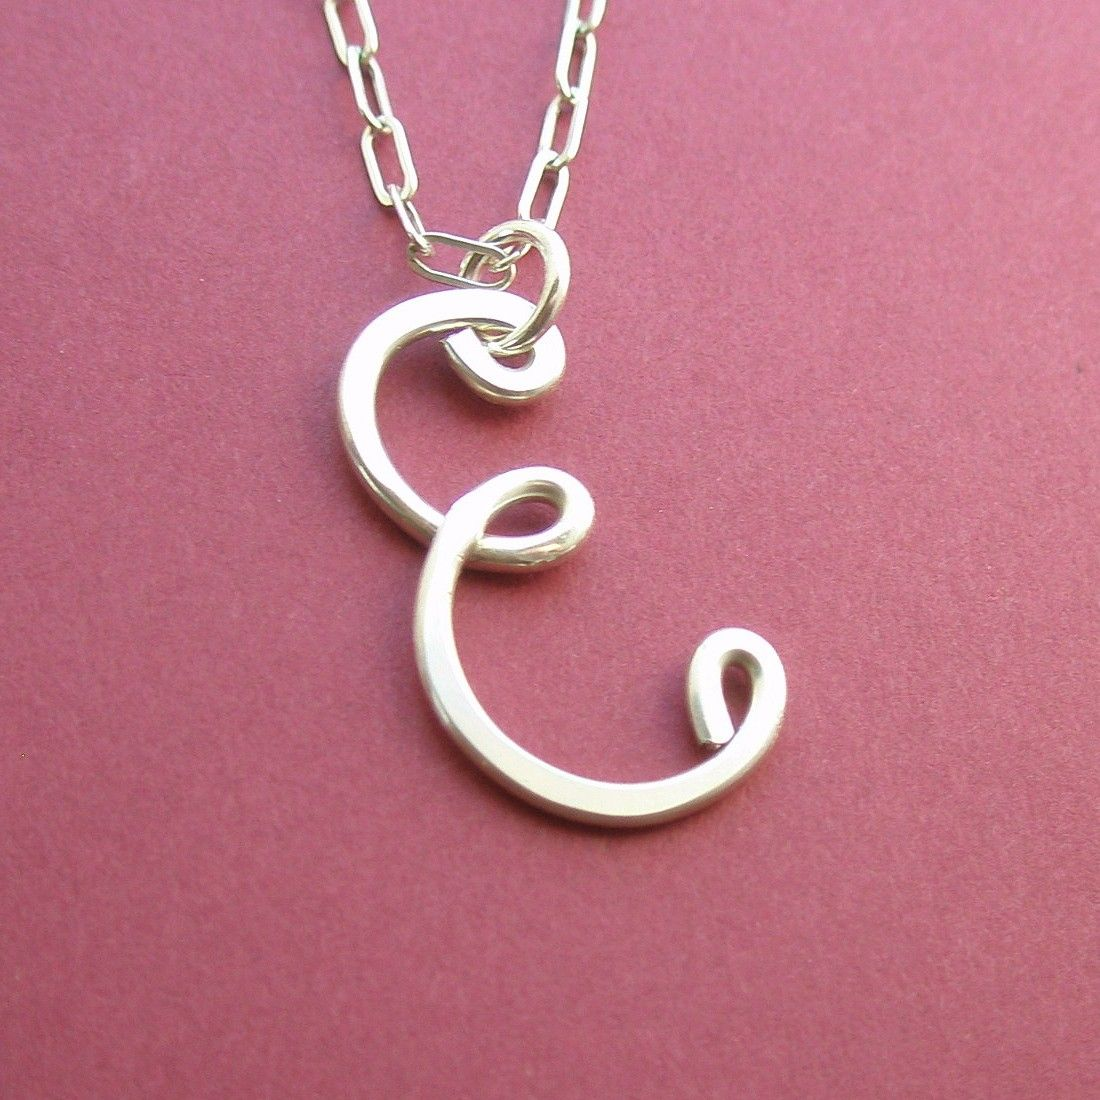 the letter e necklace all sterling silver 2500 via etsy